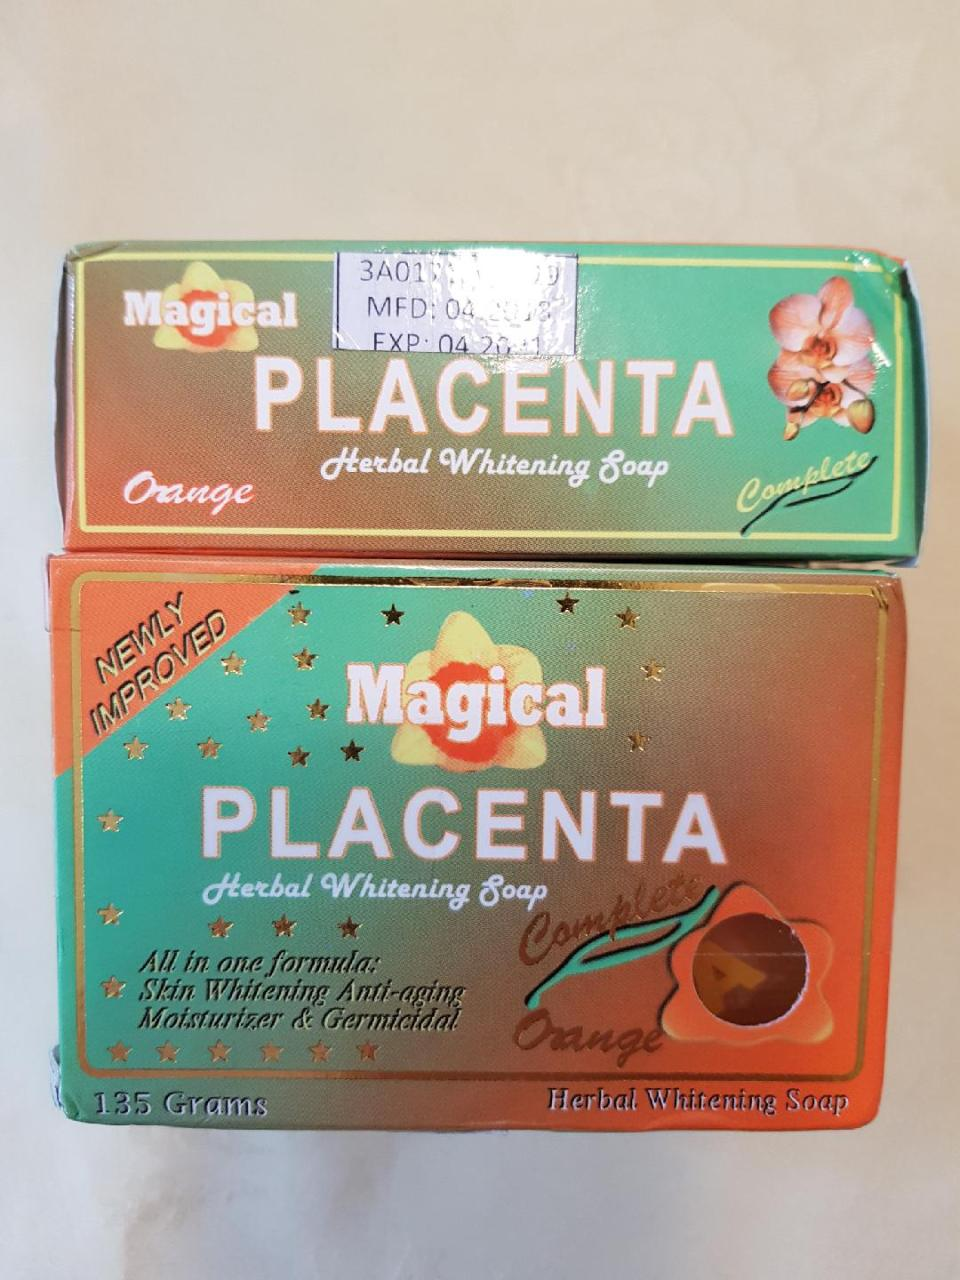 Would you use Magical Placenta?